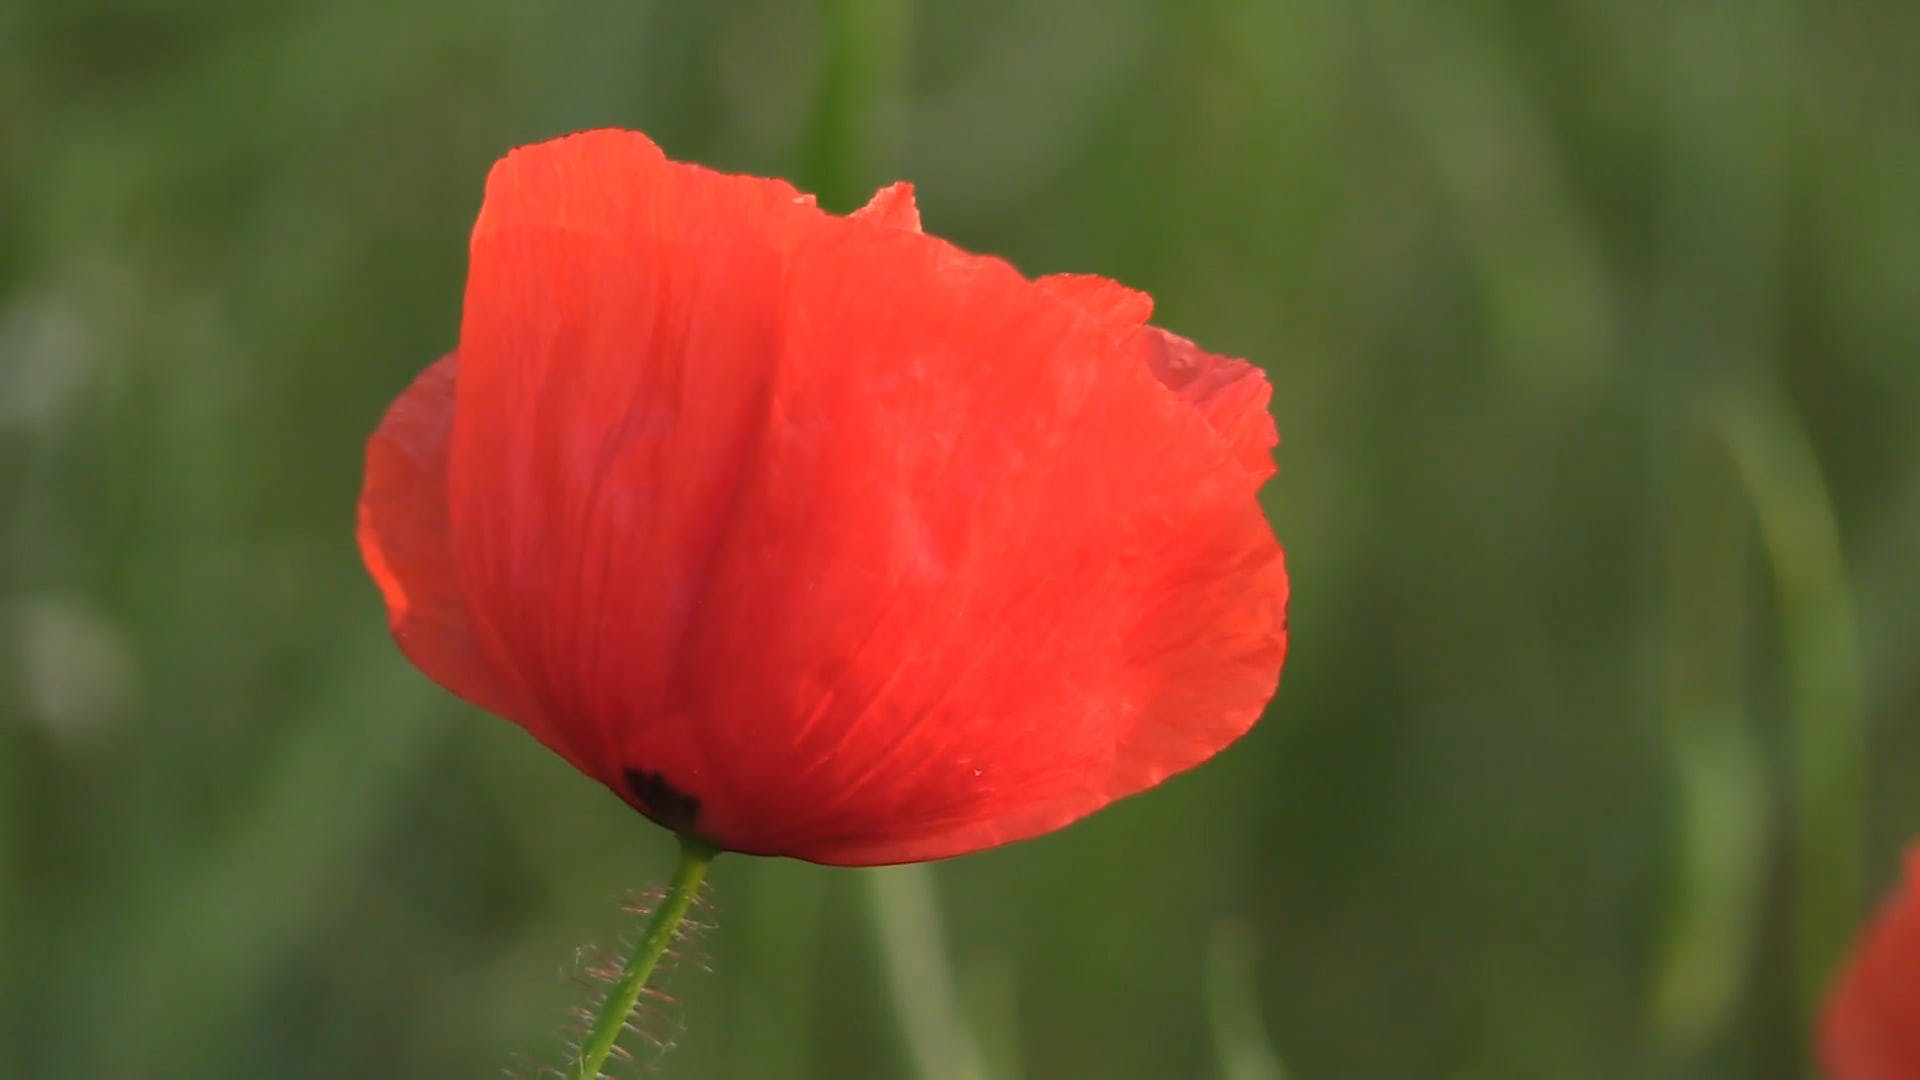 Video Of A Red Flower